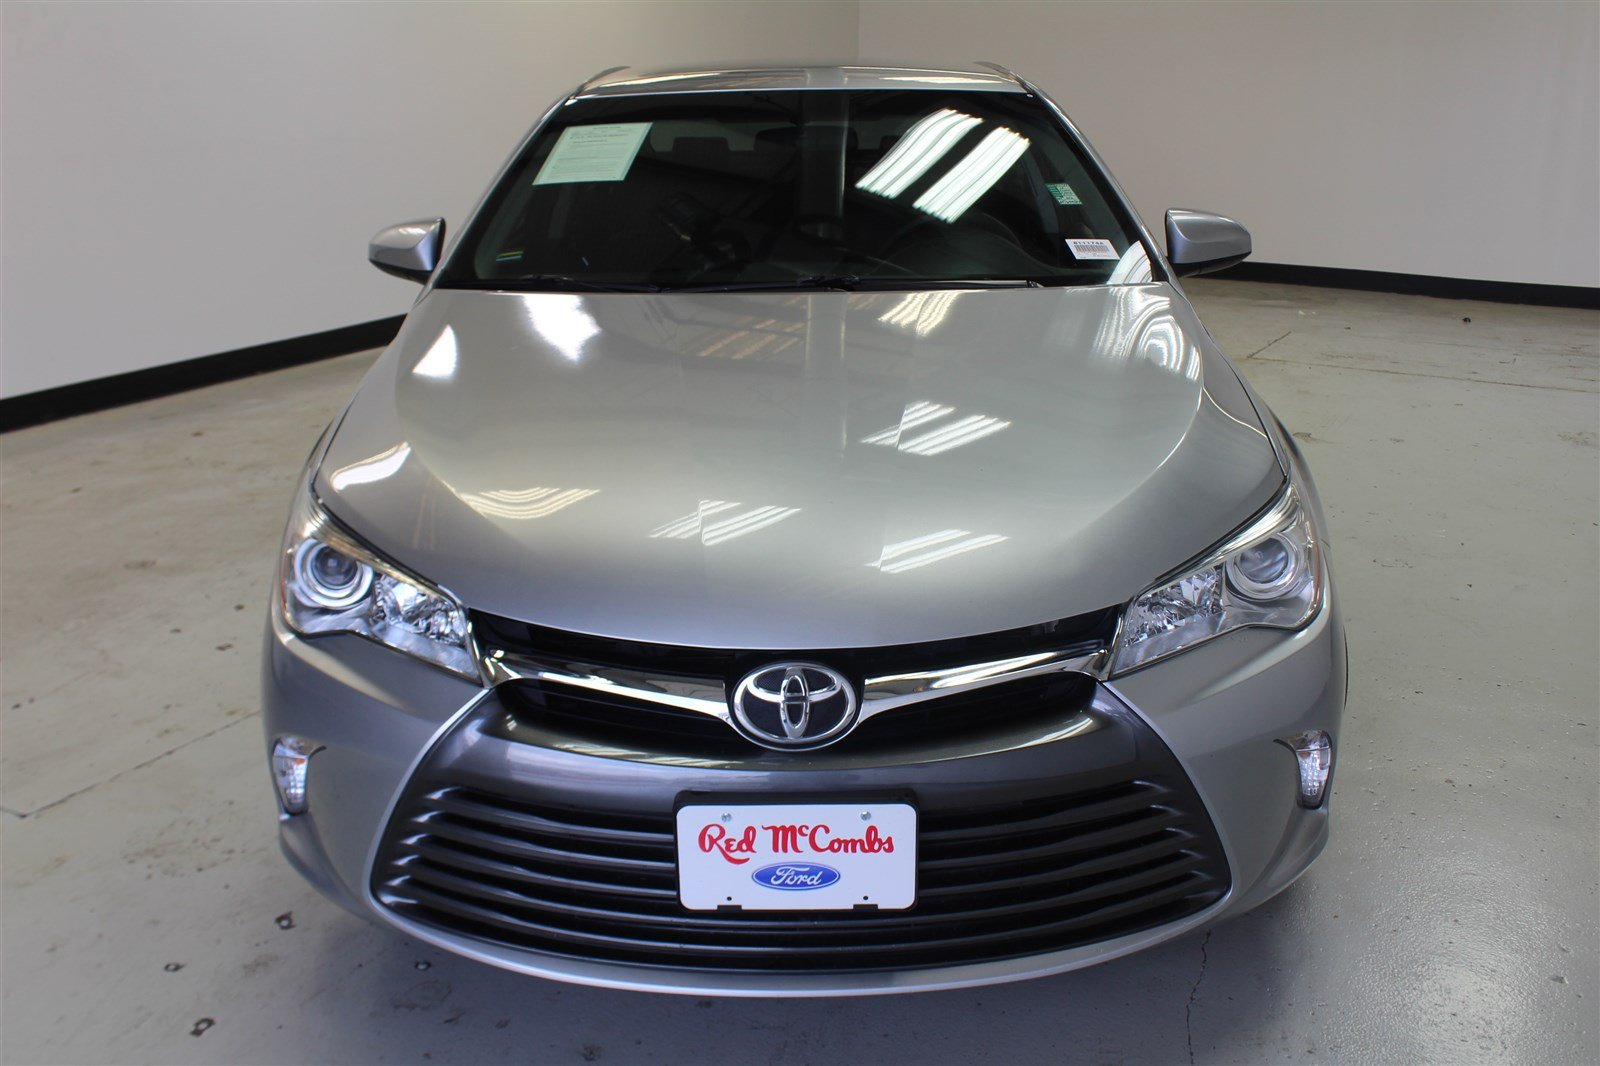 rochester id camry used mn fwd image le details vehicle toyota se